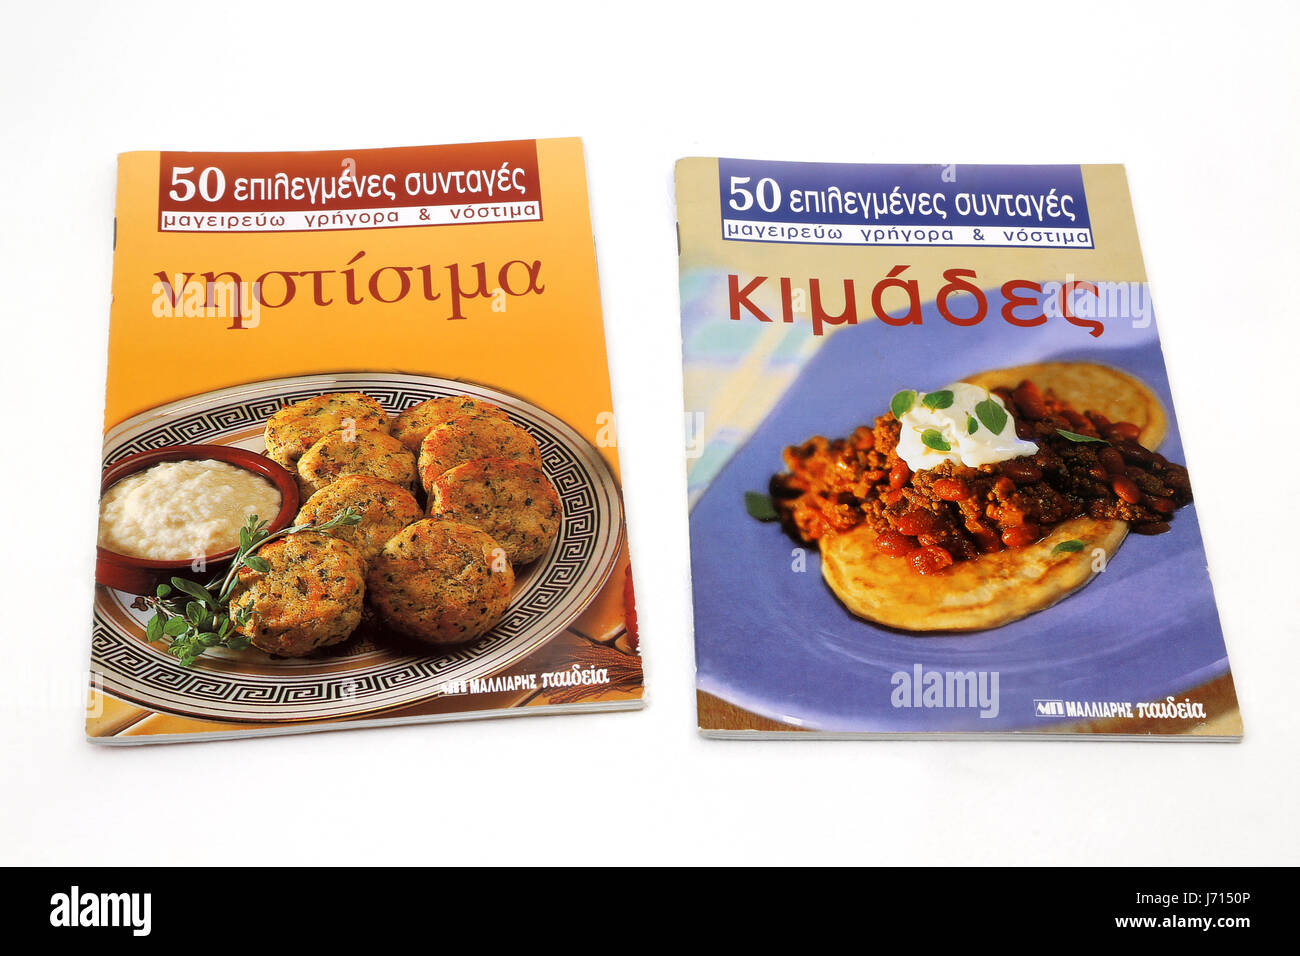 Greek Recipe Books - Stock Image